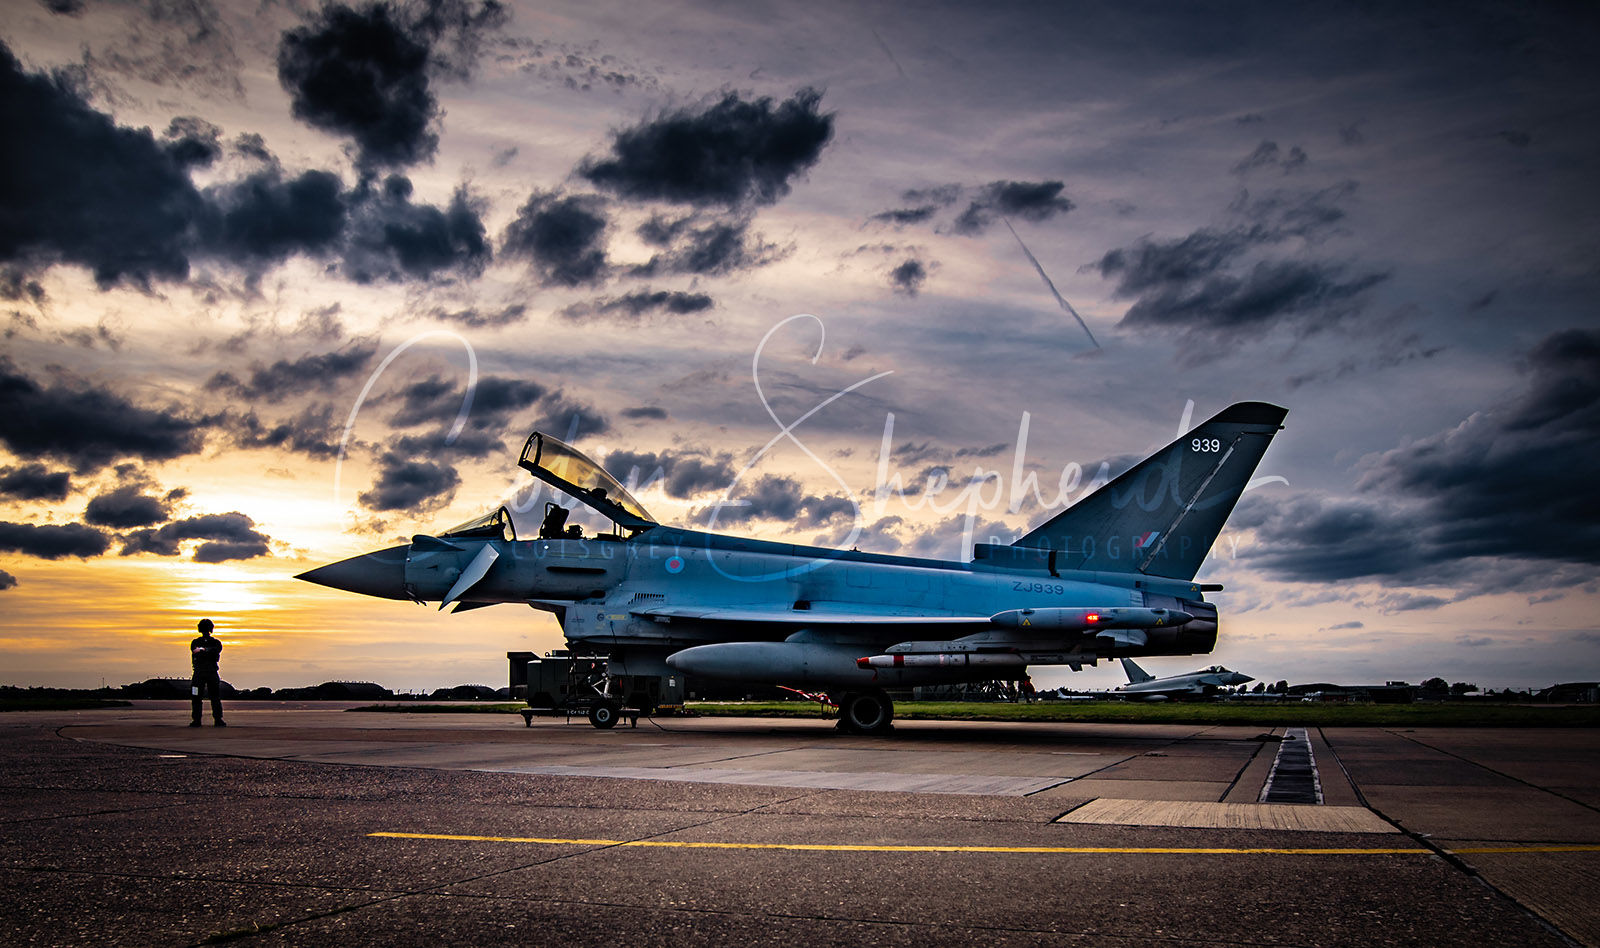 Eurofighter Typhoon FGR4 at Sunset, RAF Coningsby, Lincolnshire